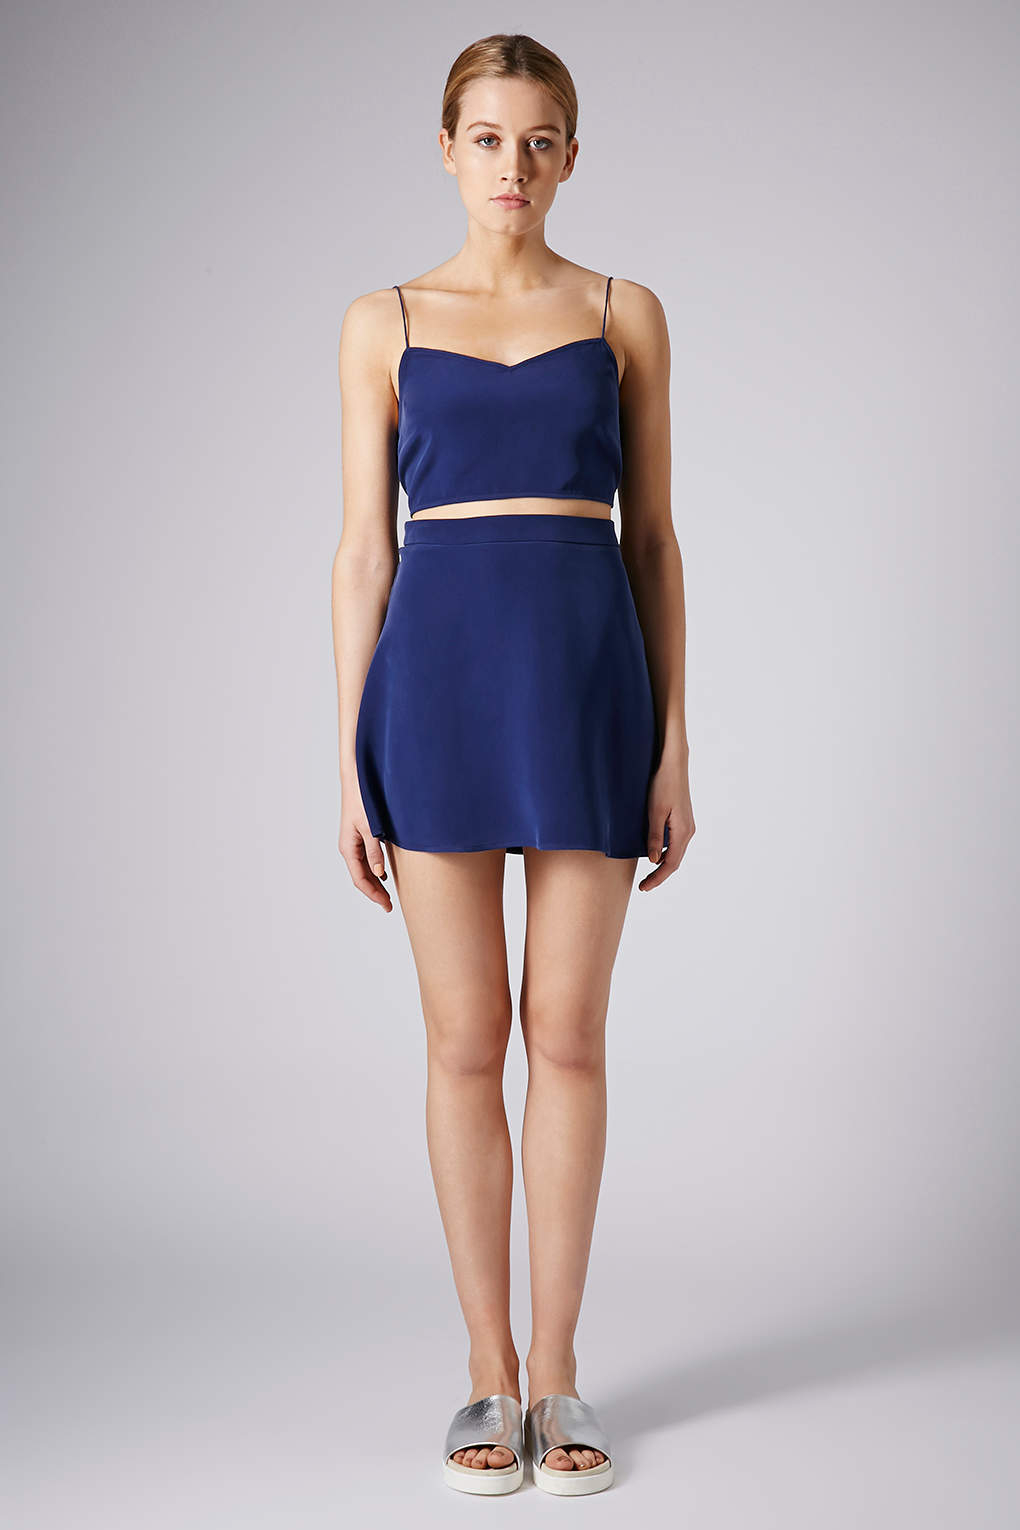 topshop sandwashed silk skirt by boutique in blue navy